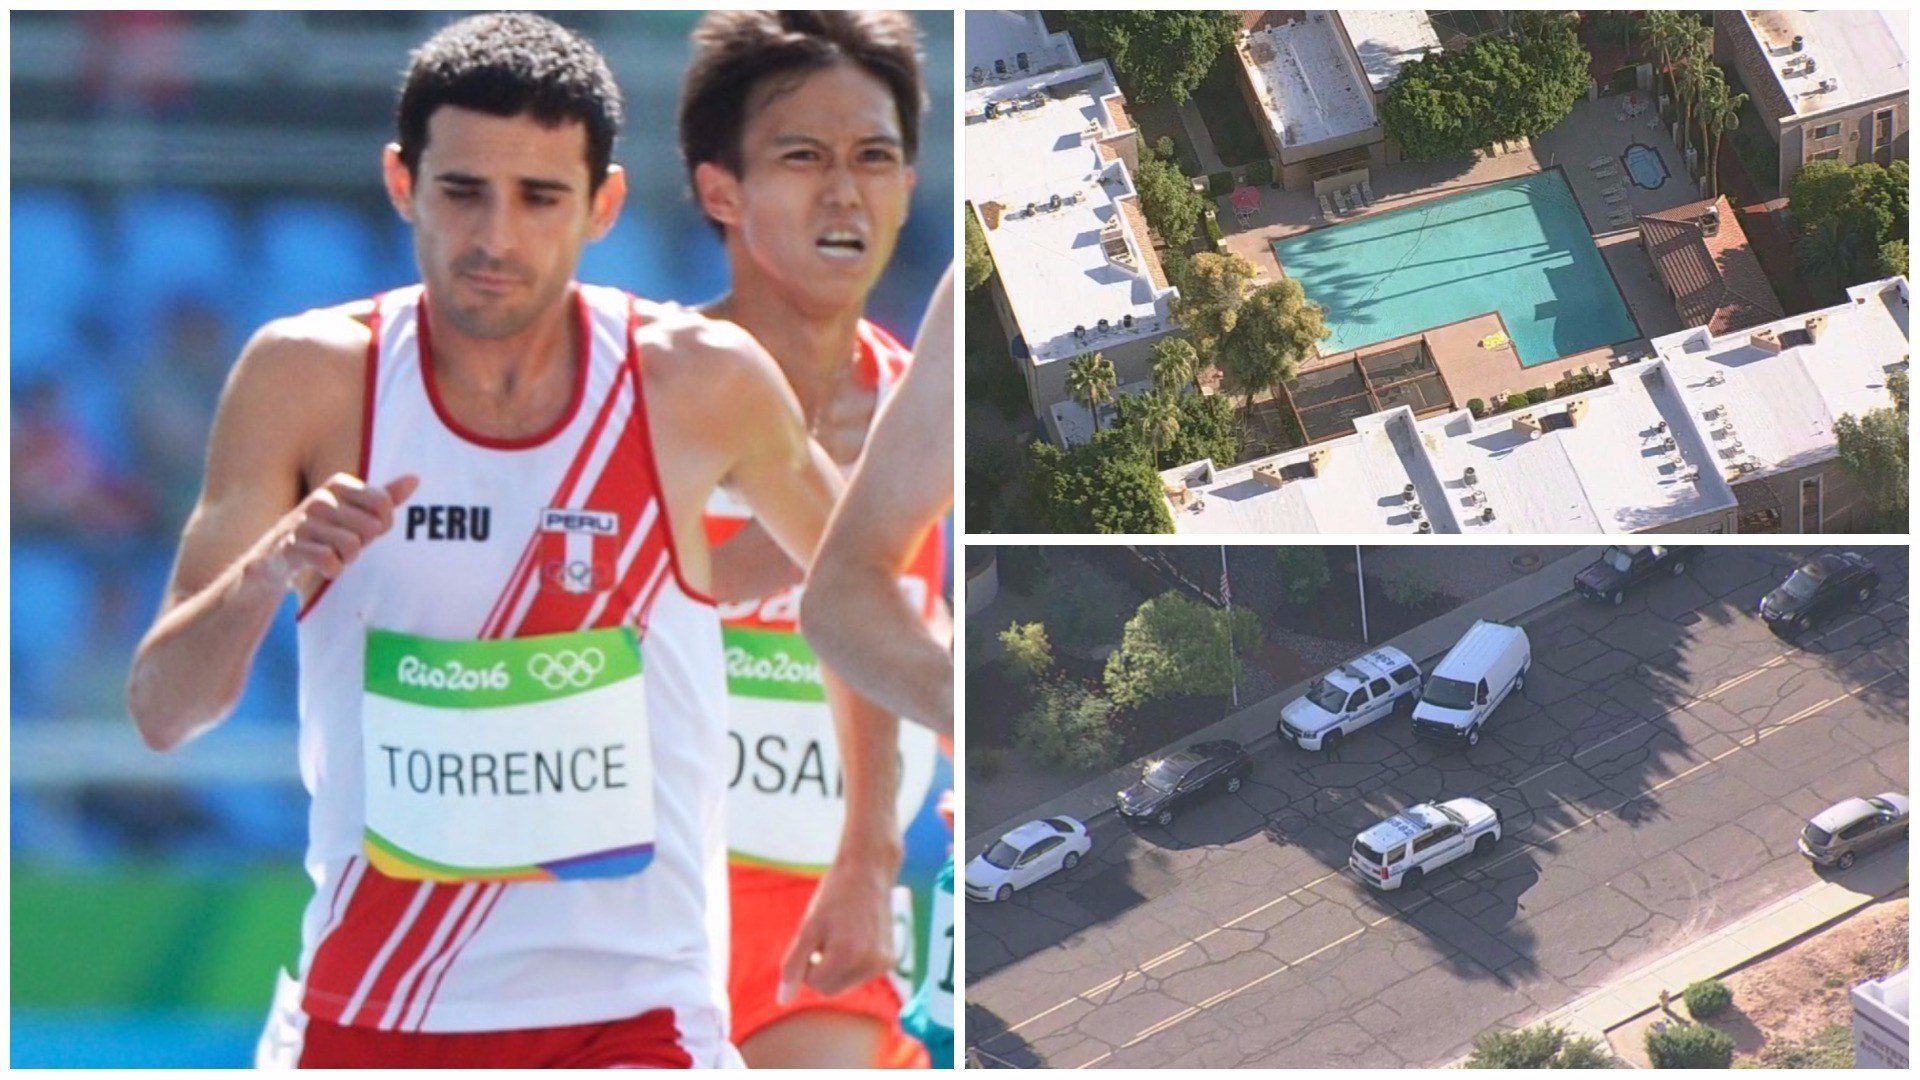 Olympic runner David Torrence found dead in Scottsdale pool